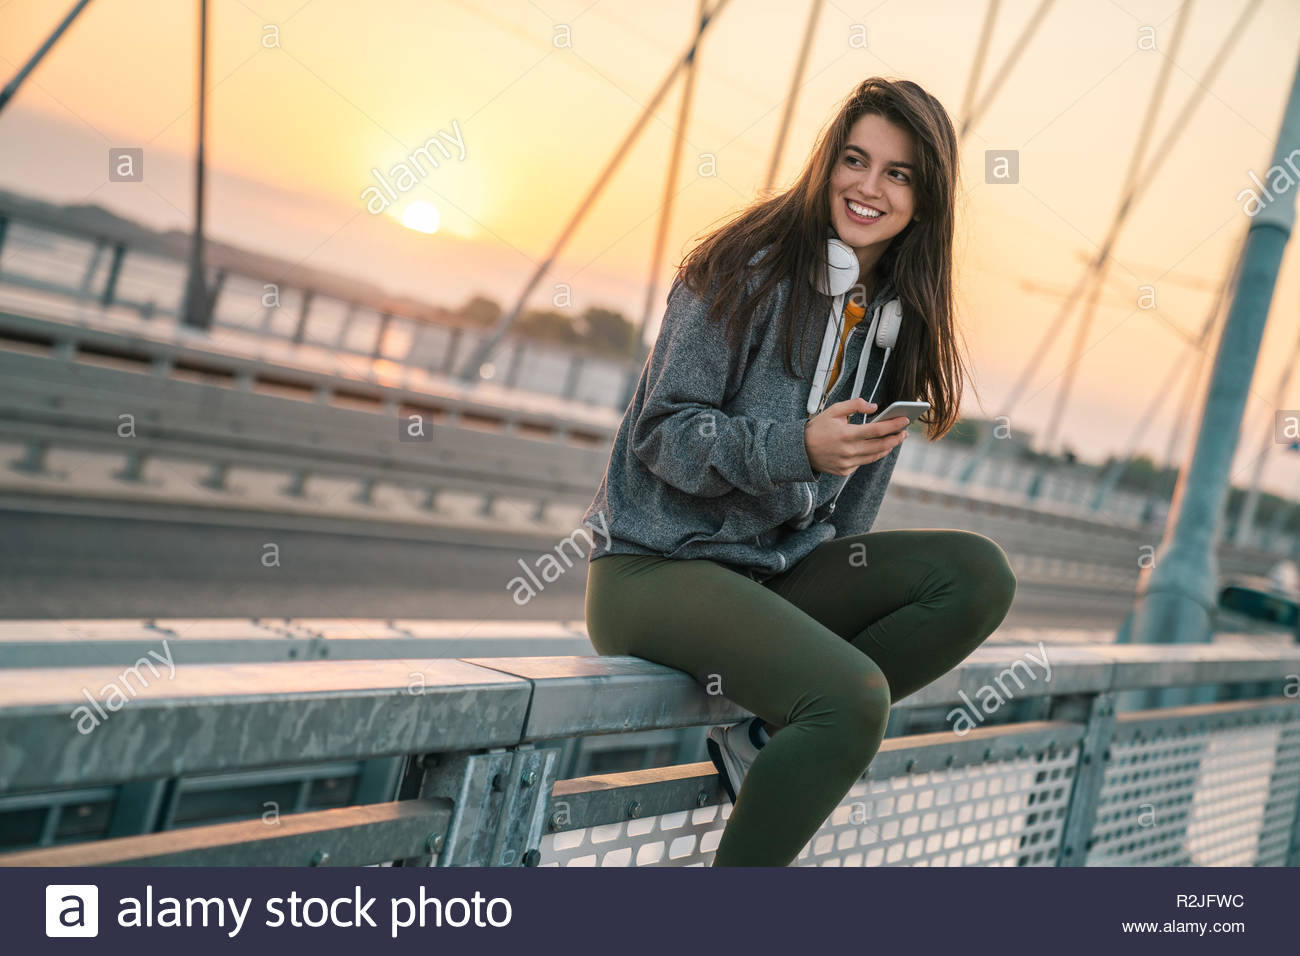 Beautiful young sportswoman smiling while holding a phone outdoors. - Stock Image